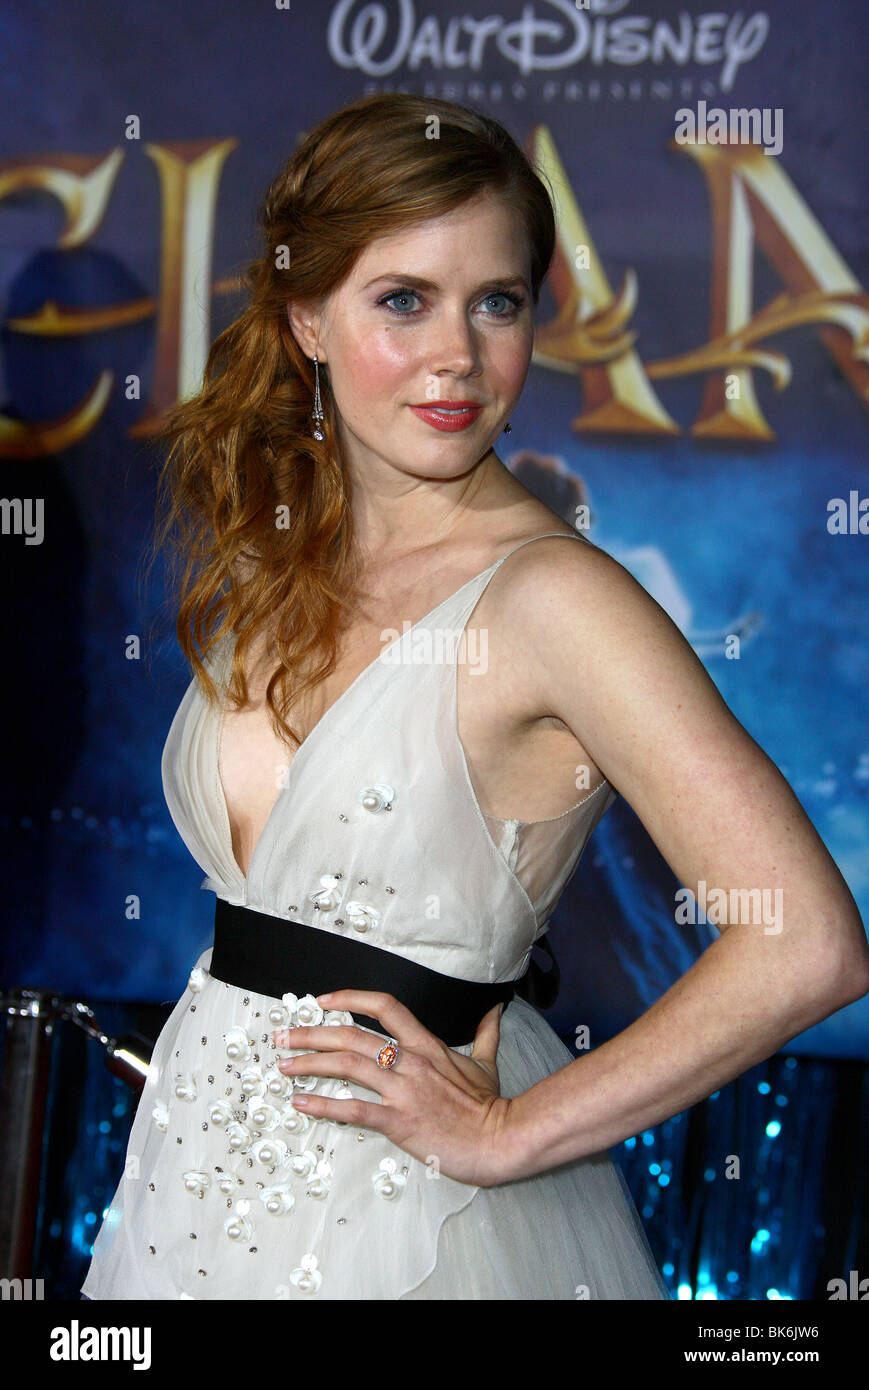 AMY ADAMS verzauberte Welt PREMIERE HOLLYWOOD LOS ANGELES USA 17. November 2007 Stockbild